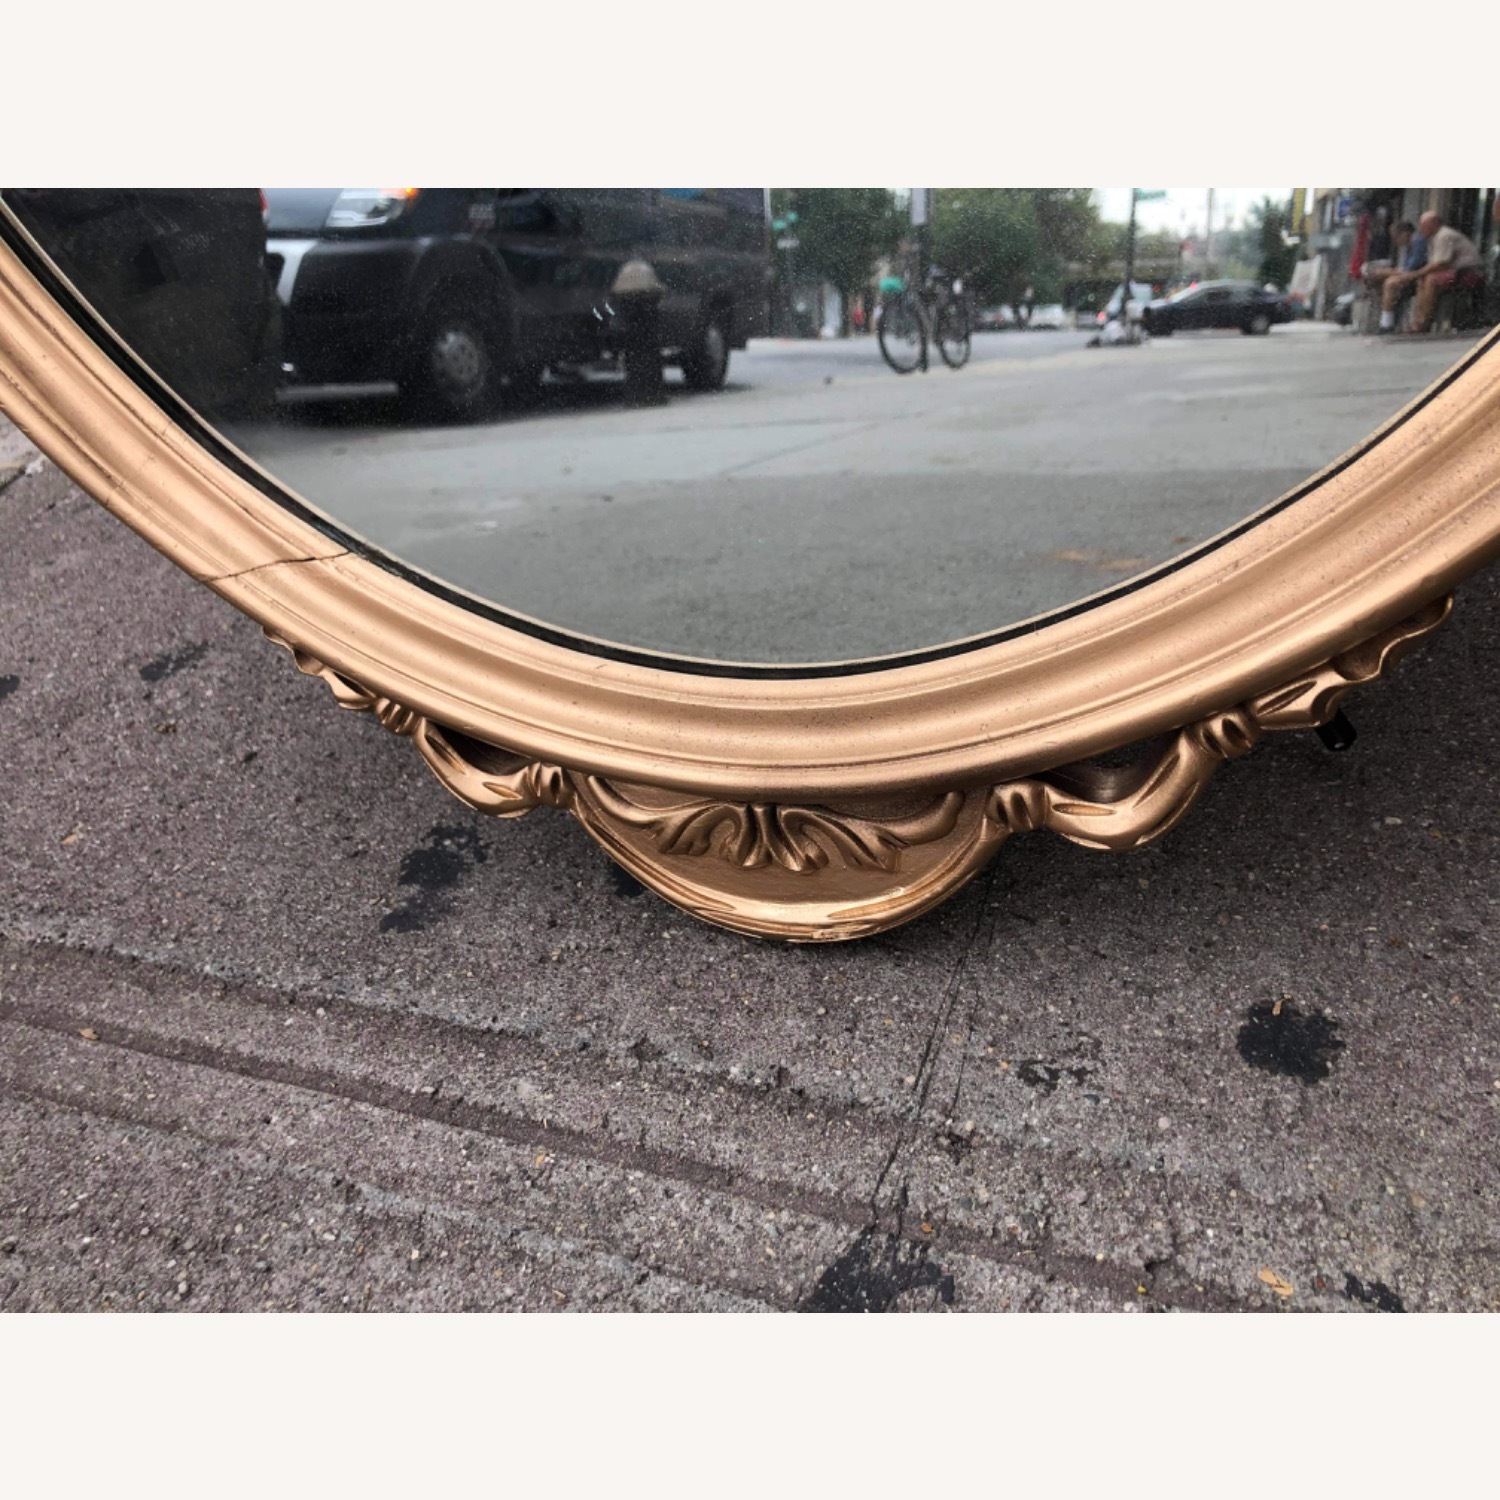 Antique 1920s Gold Painted Wooden Framed Mirror - image-6